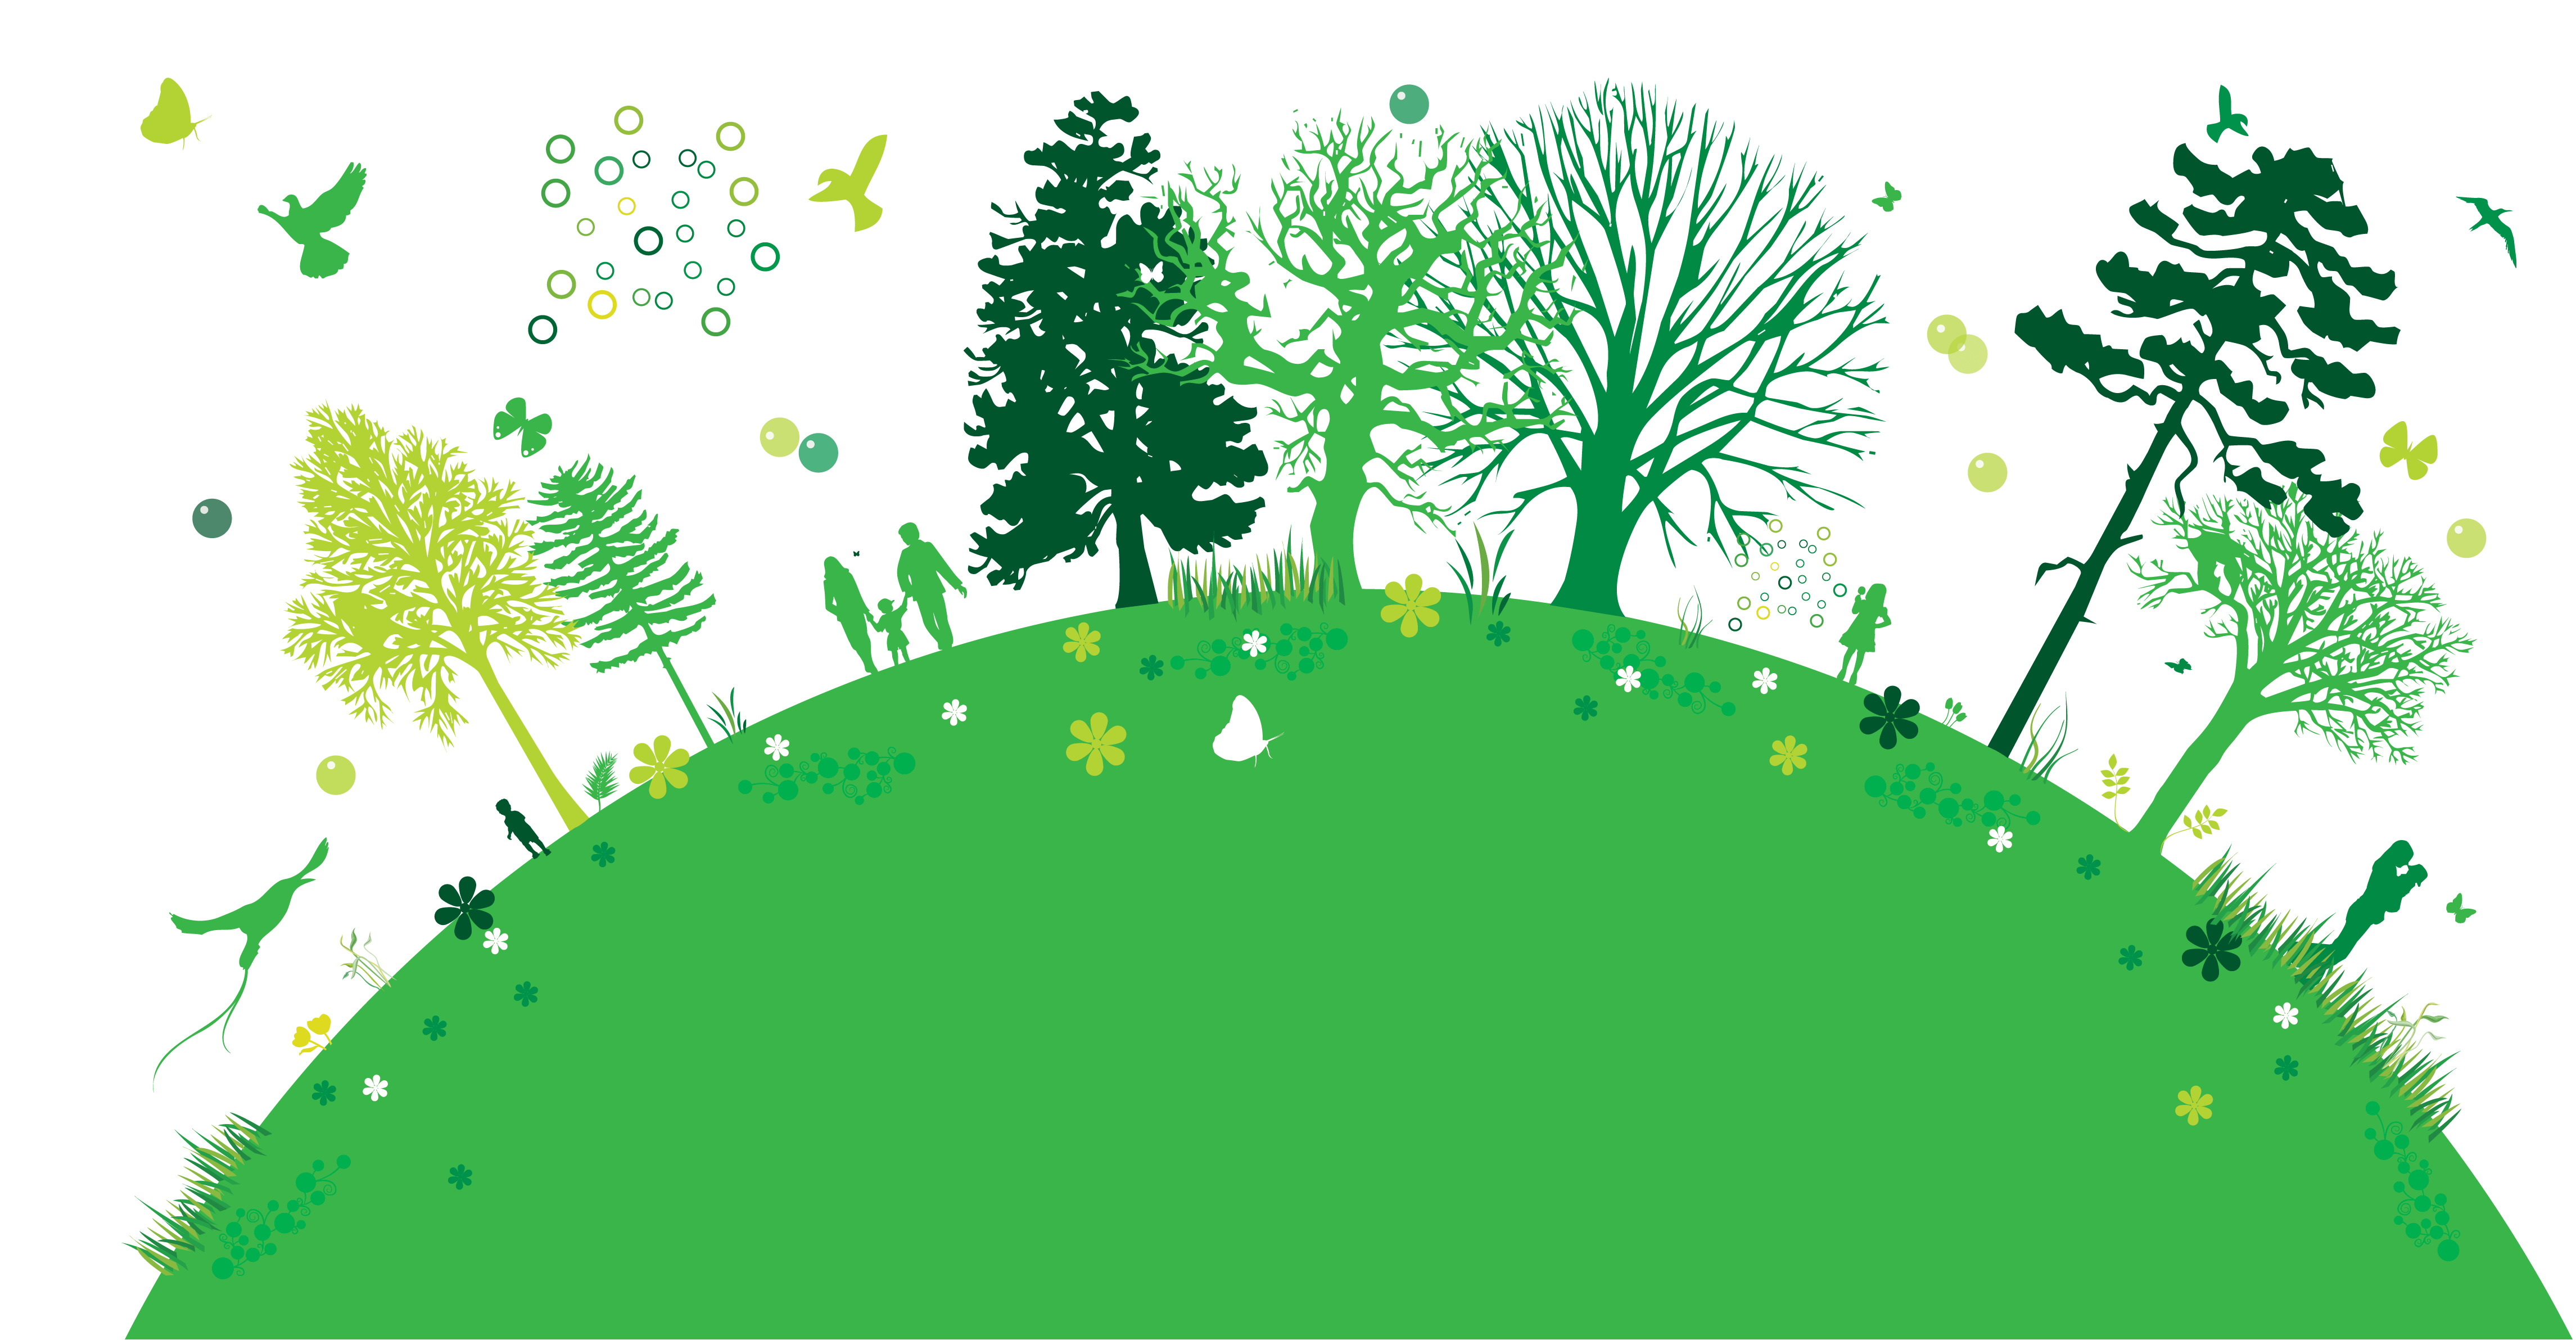 Watershed ecology maricruz ecological. Environment clipart physical environment